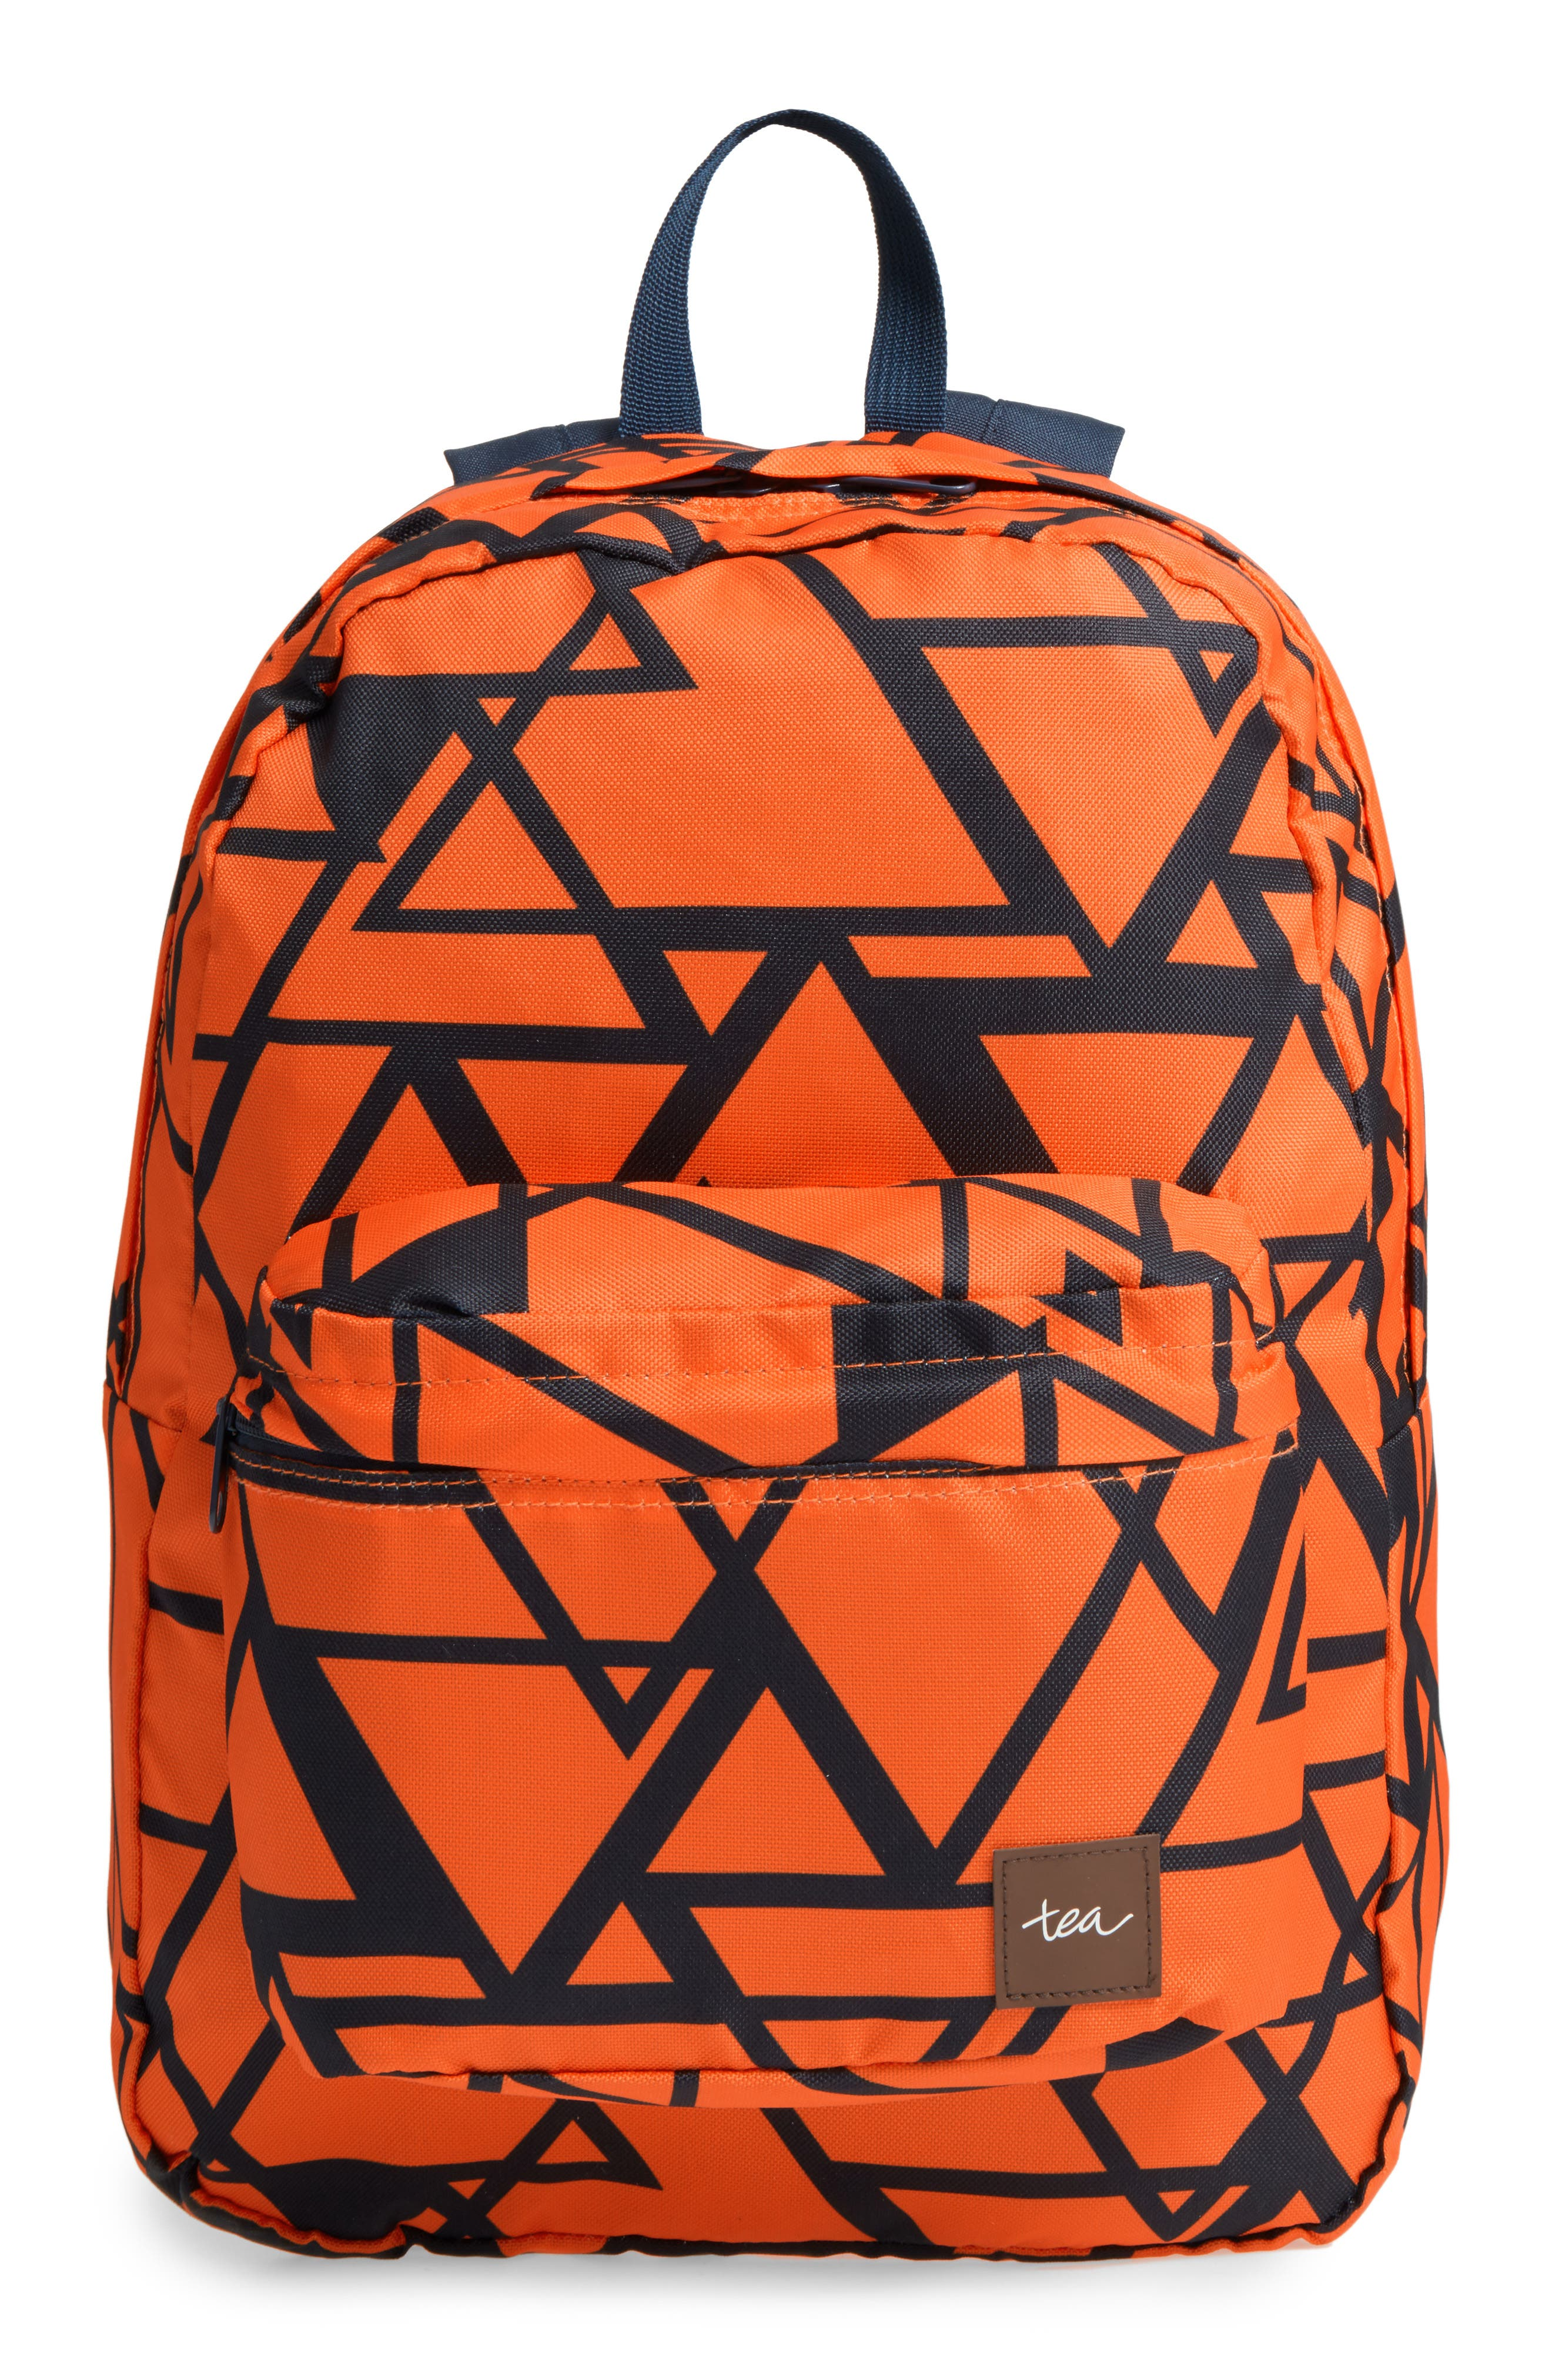 Alternate Image 1 Selected - Tea Collection Scots Triangle Backpack (Kids)